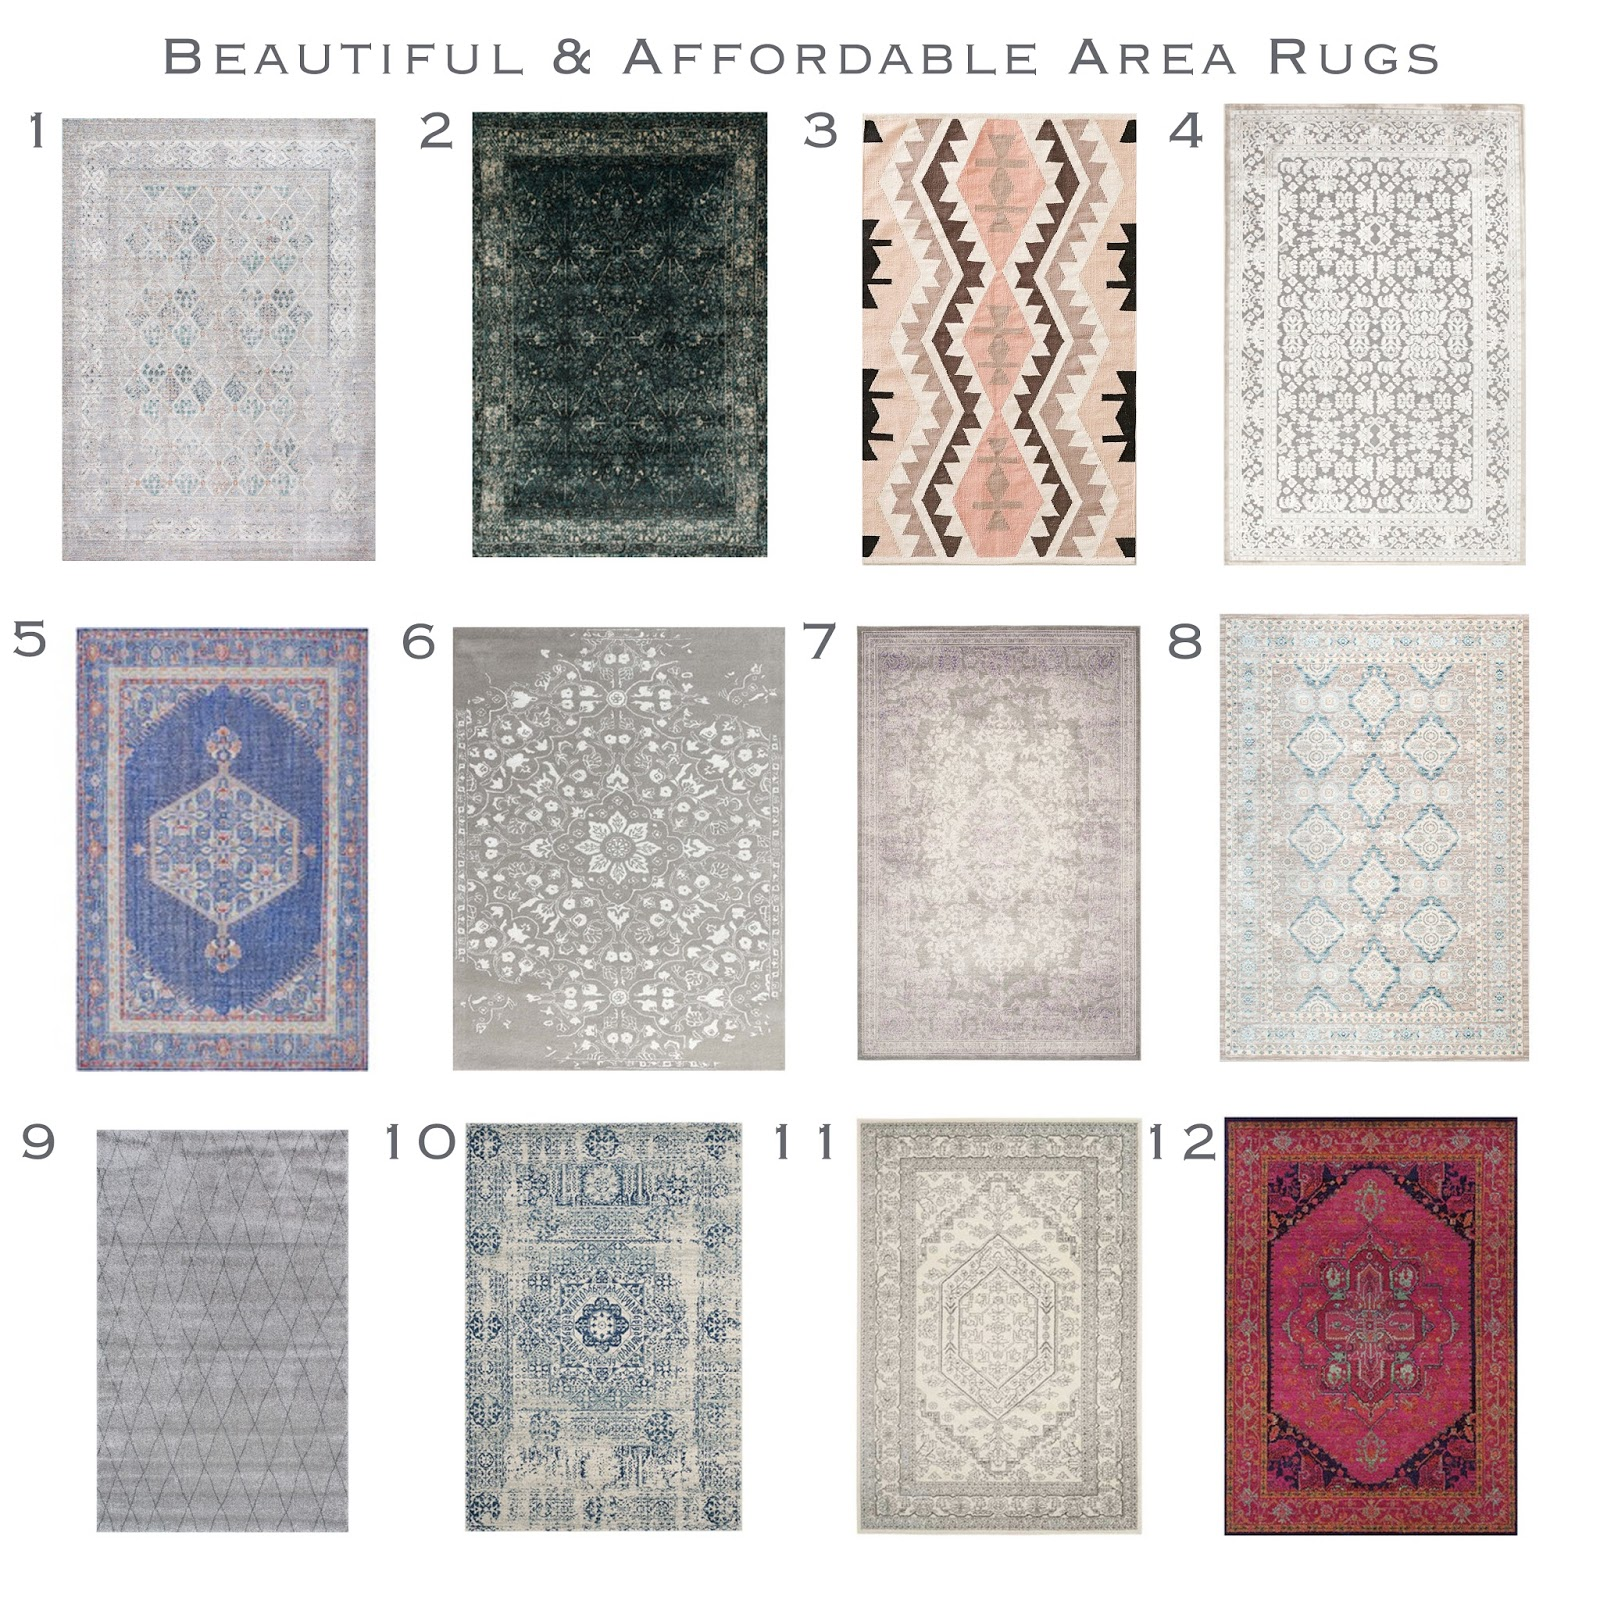 white top wonderful fantastic throw rug rugs with lowes area photos improvement living lovely floor of shag creative at sweet affordable room fresh ideas home for cheap wooden design